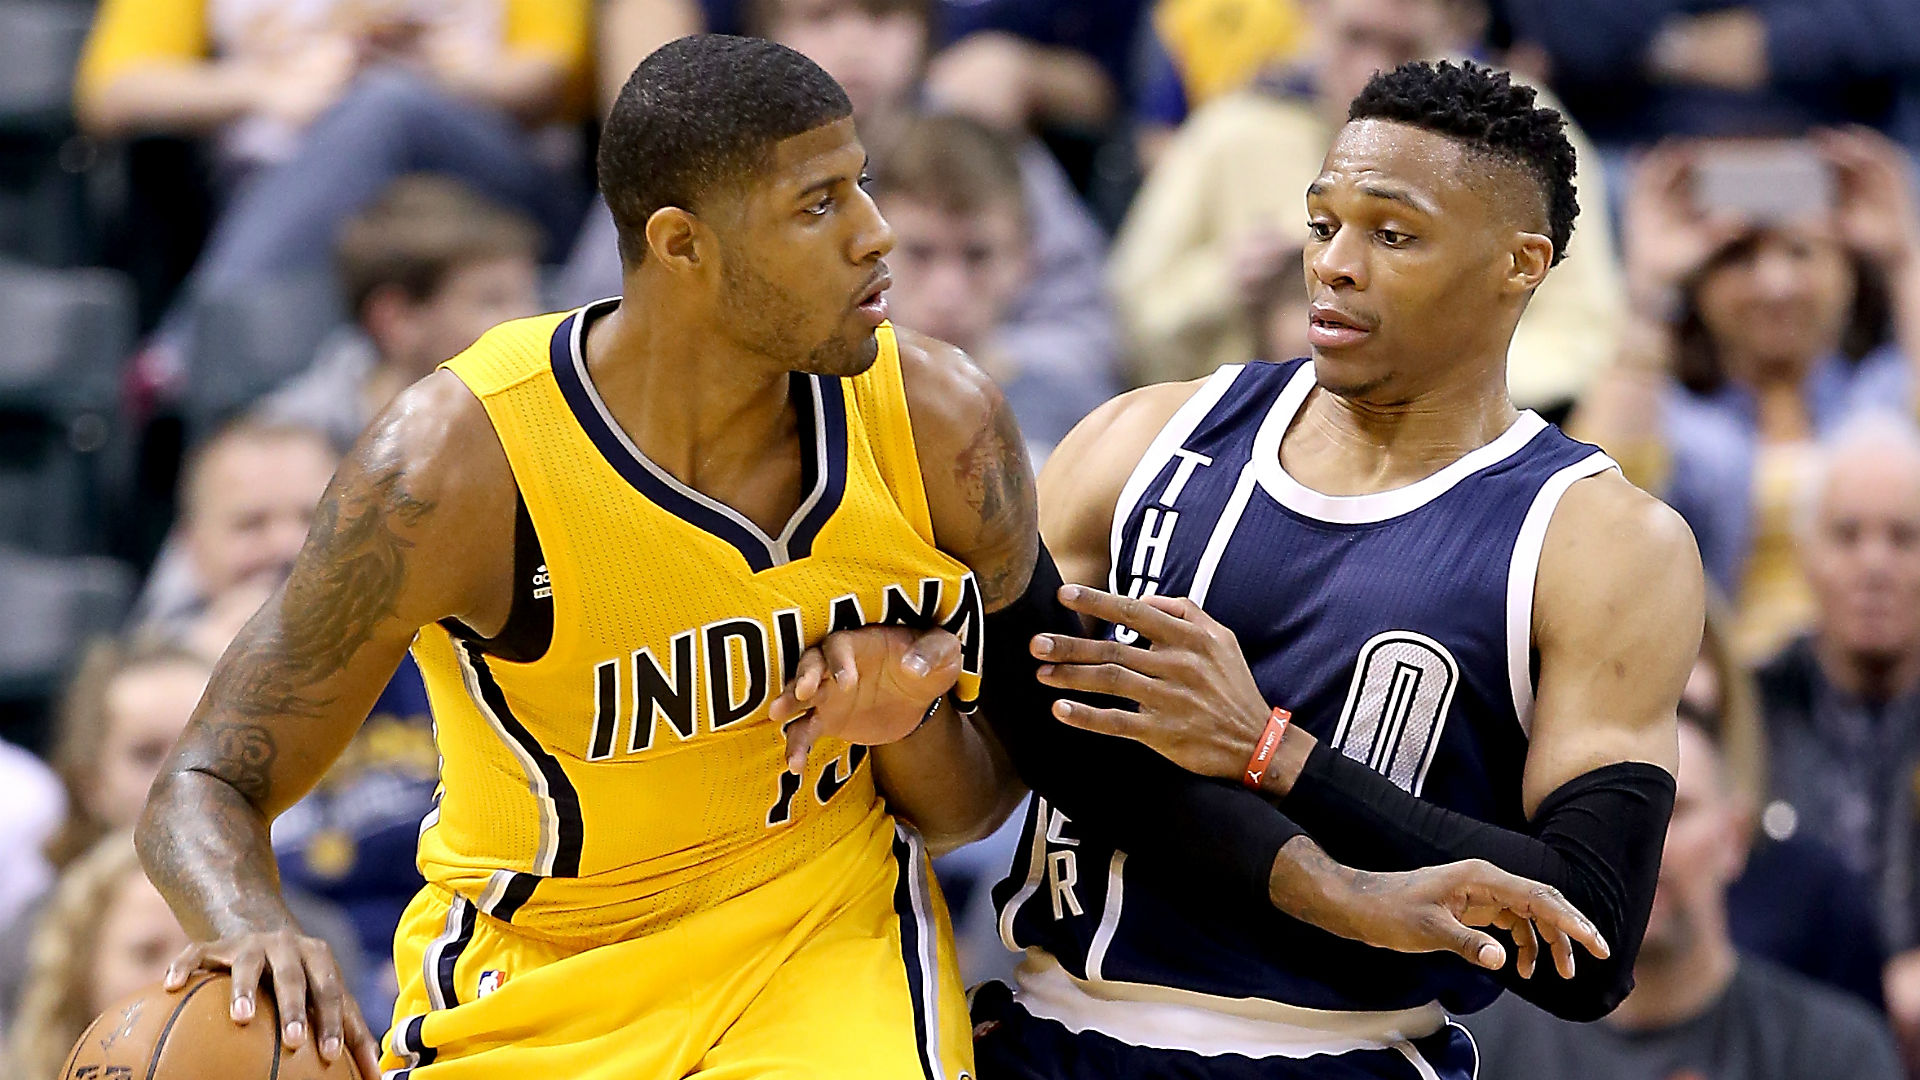 Nba Trades With Bold Move For Paul George Thunder Have